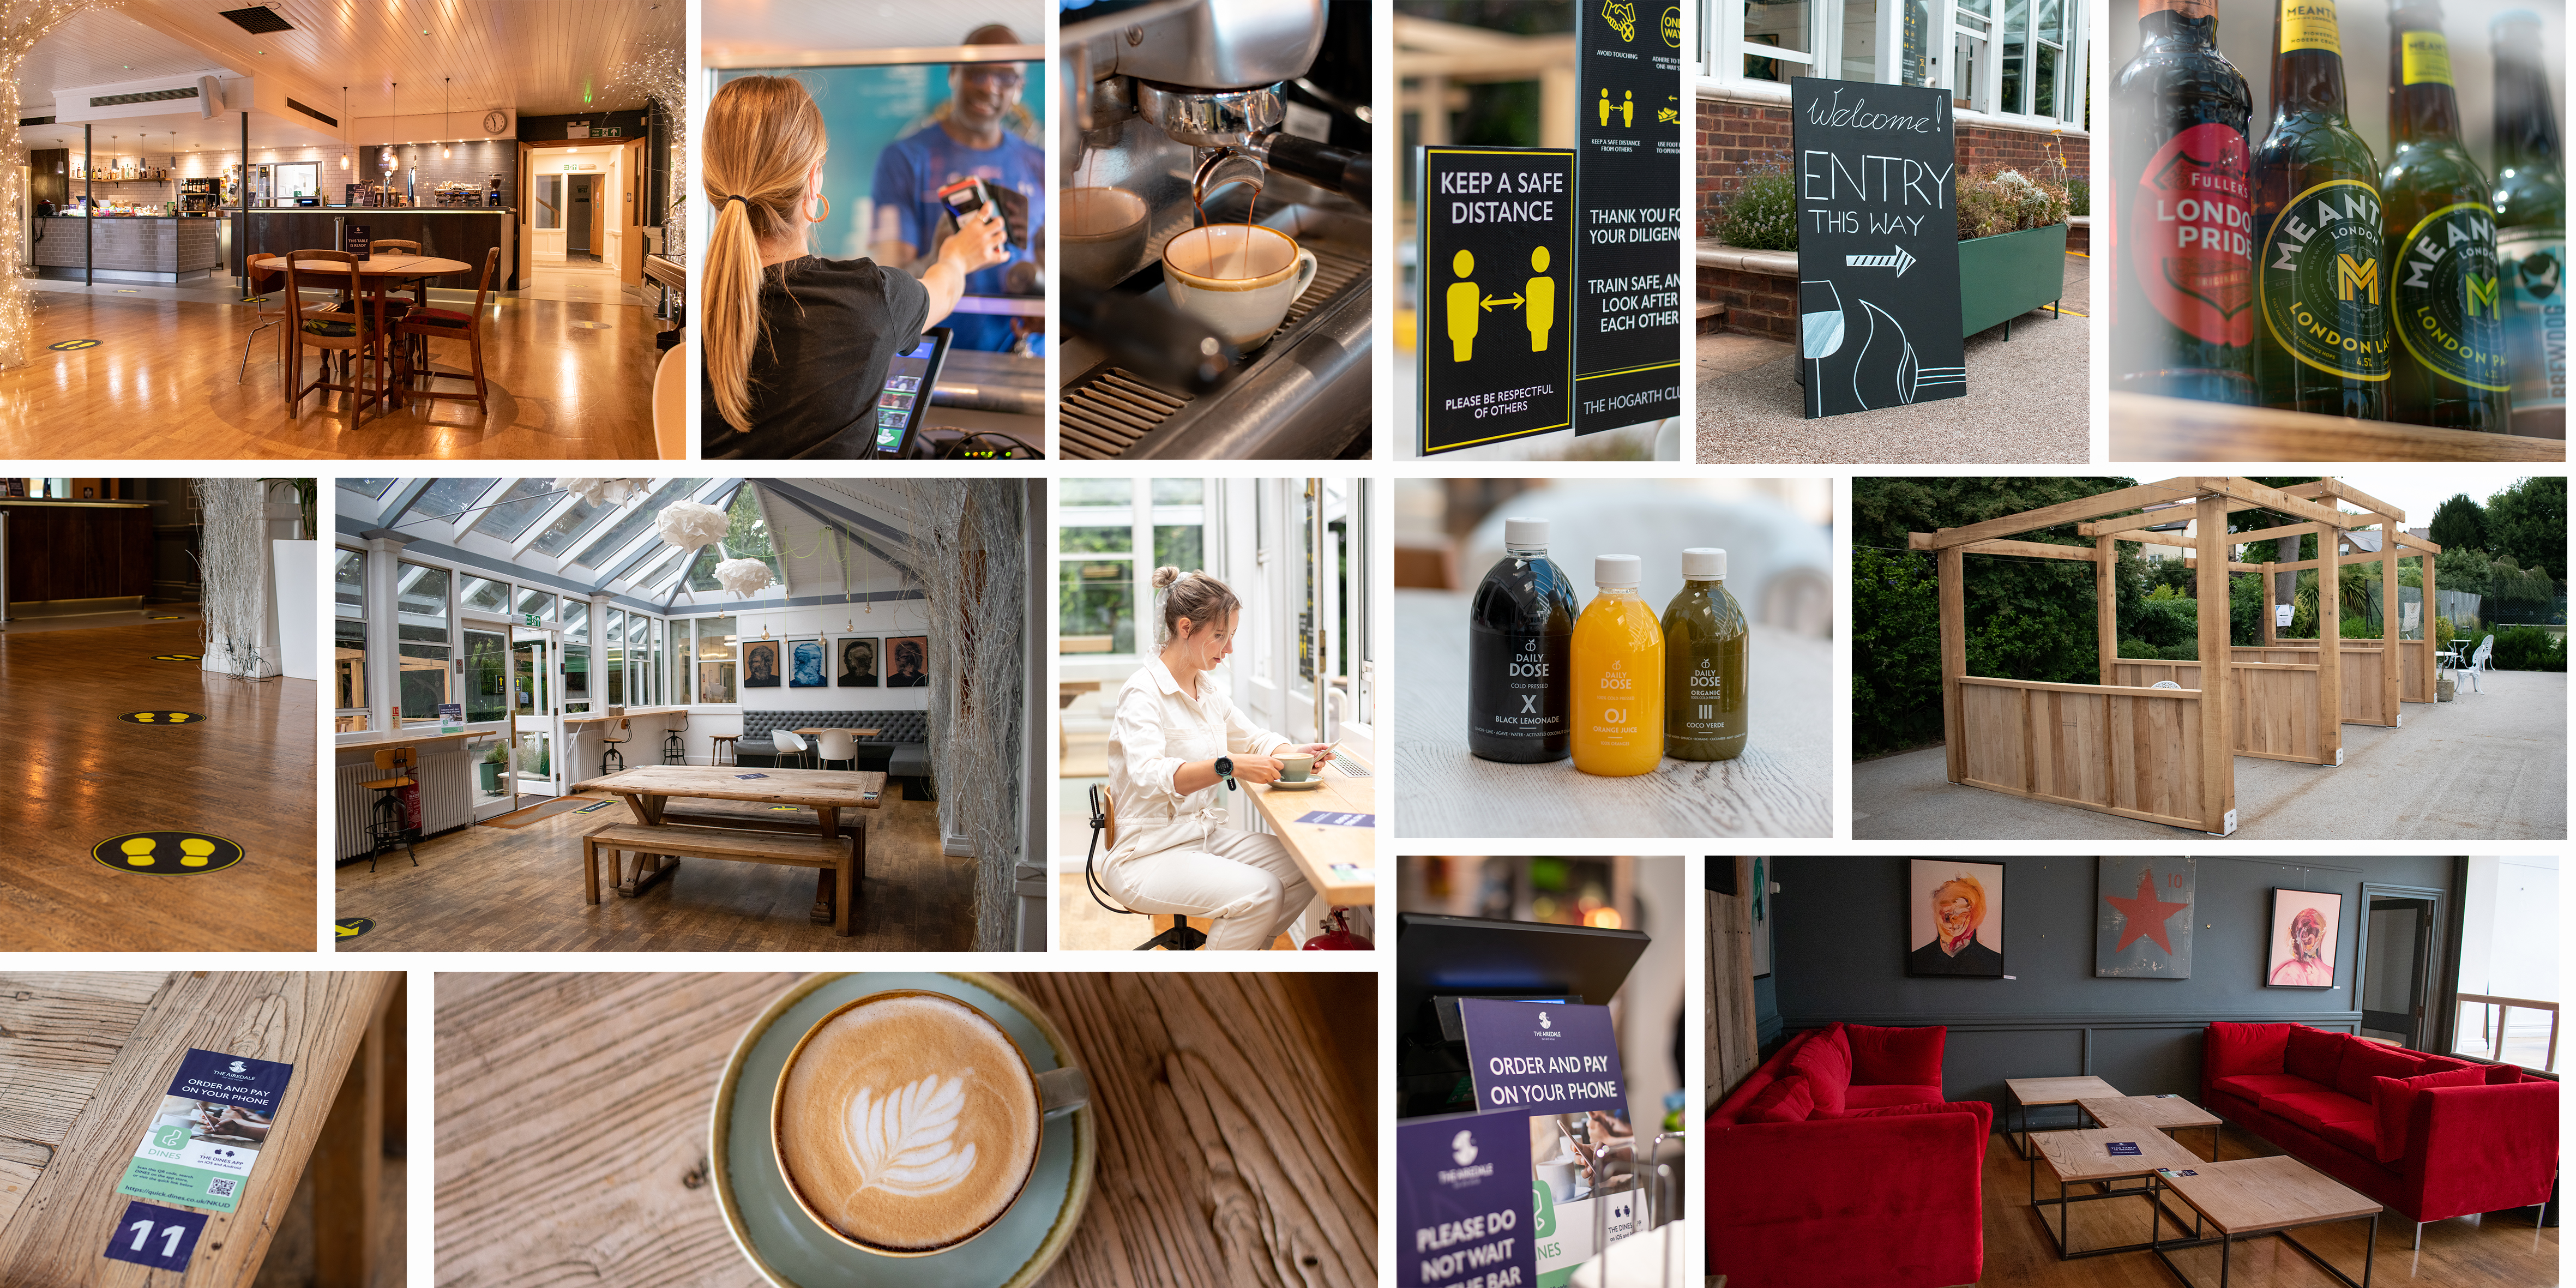 the airedale bar chiswick based at the Hogarth social distanced space fresh smoothies beer wine